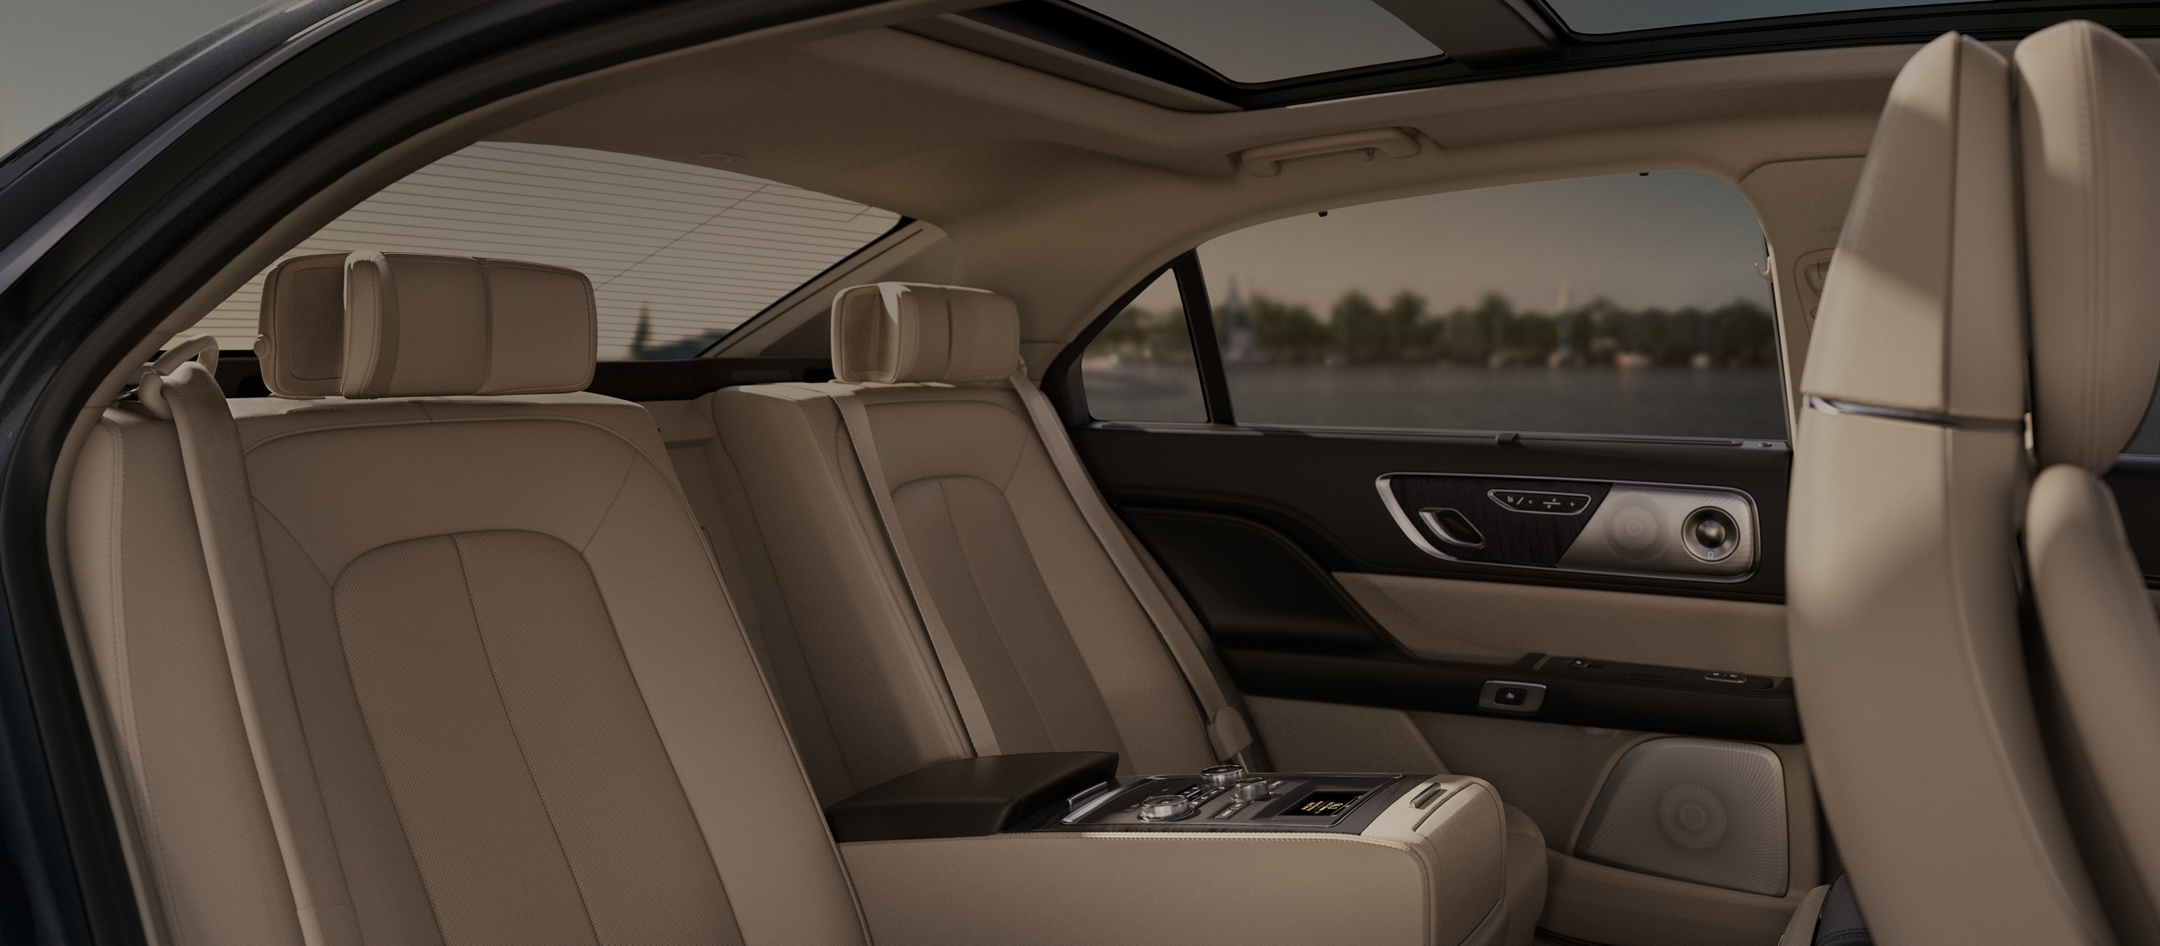 The available rear seat amenities package is shown inside a Lincoln Continental in the cappuccino interior color